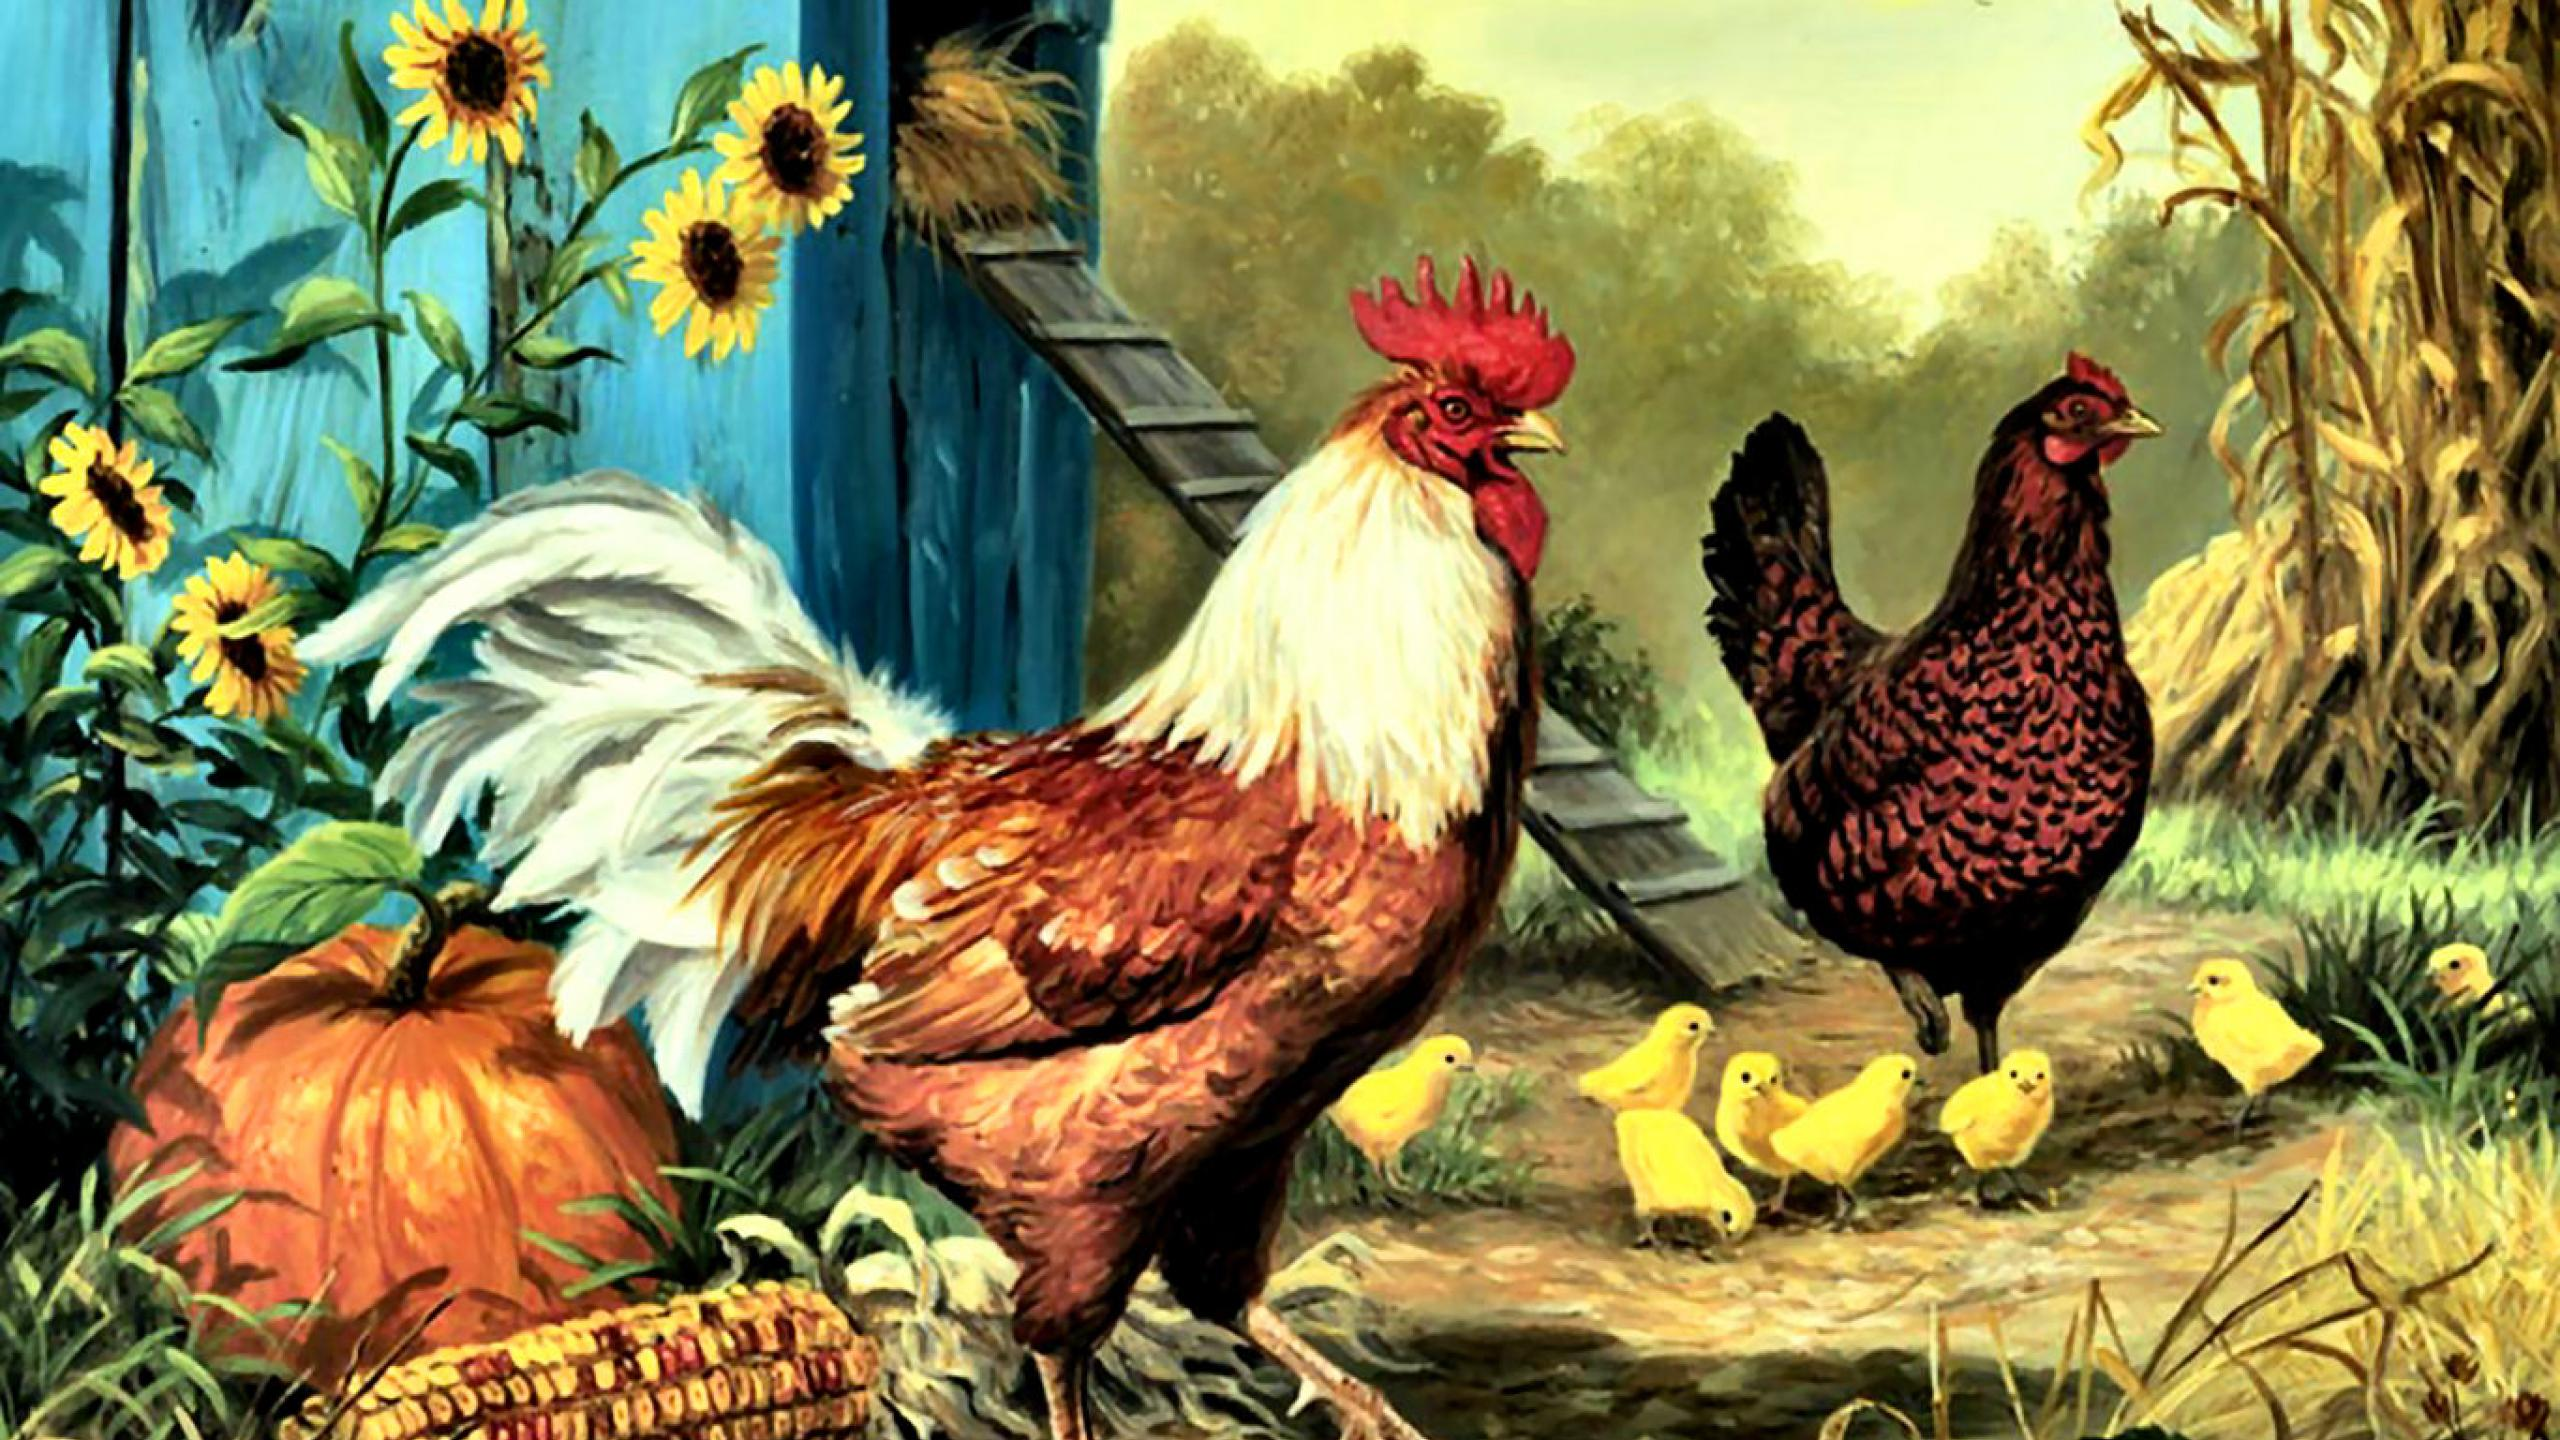 Collection of Rooster Backgrounds Rooster HD Wallpapers 2560x1440